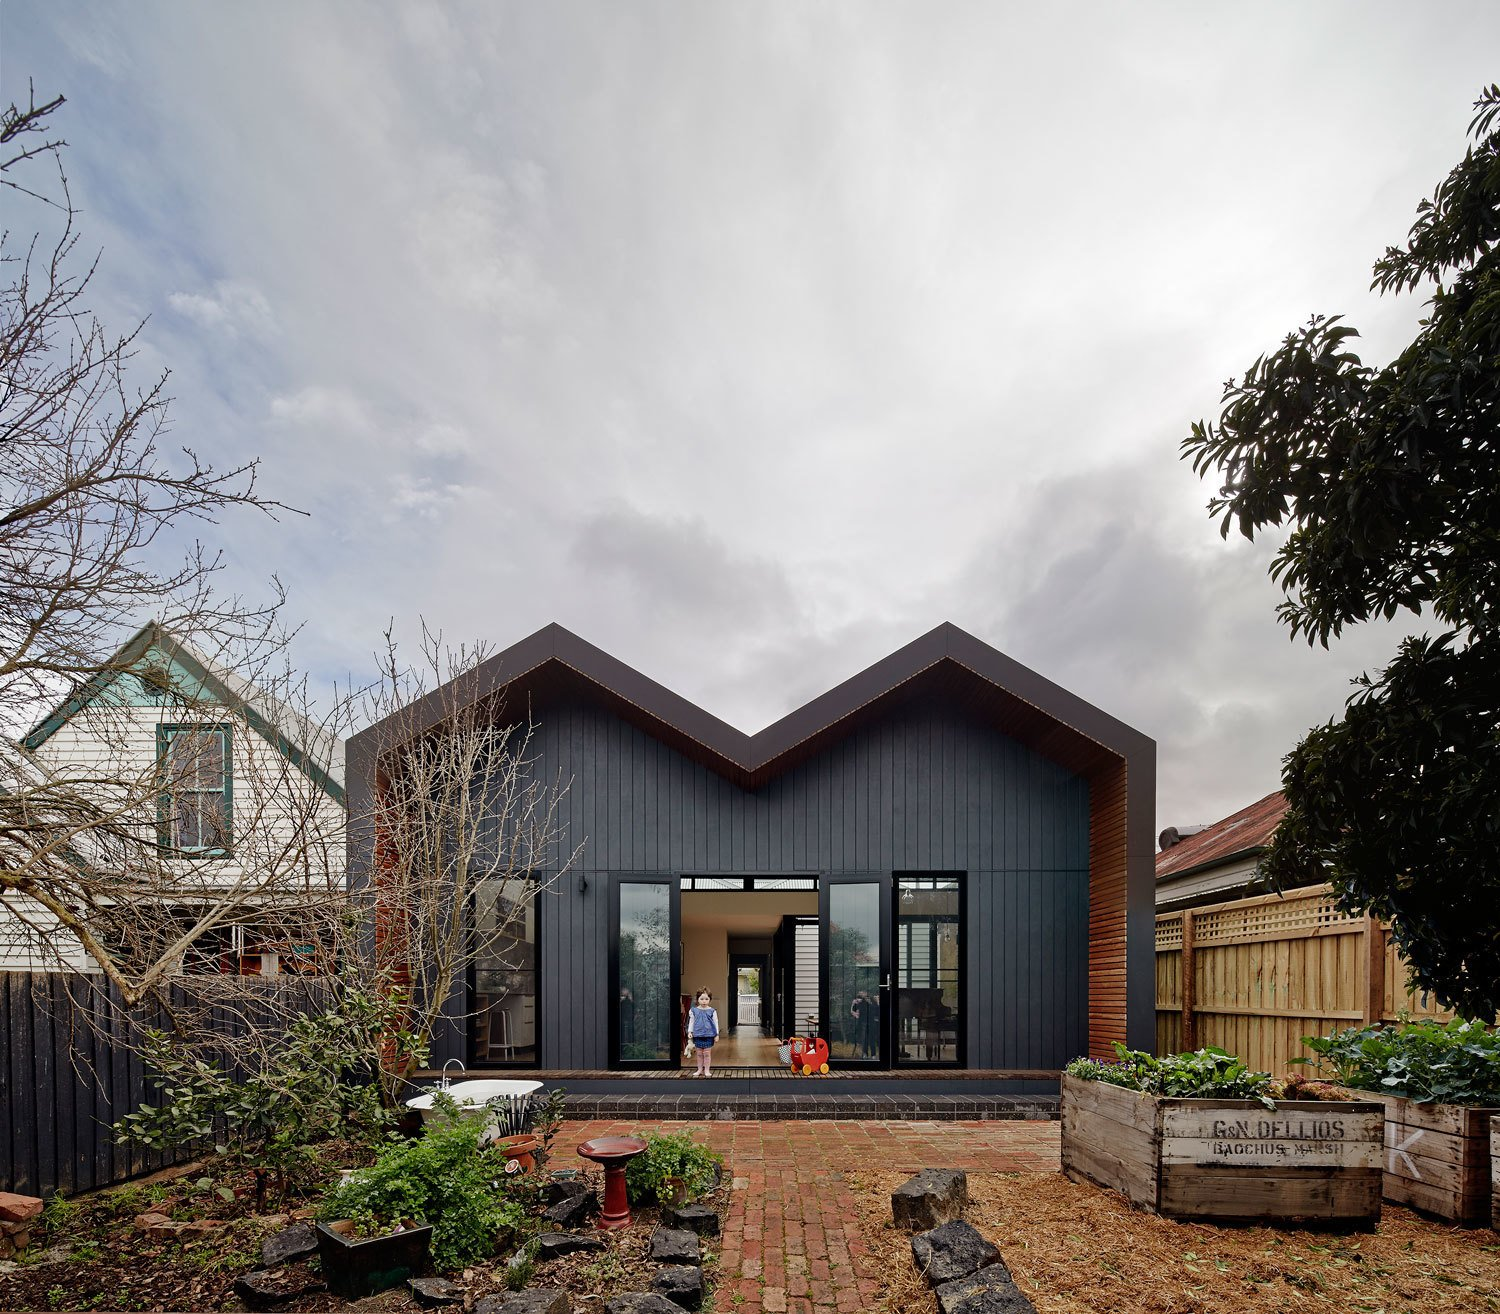 The extension sits on the property's north side. Its zig-zag shape is a continuation (and reinterpretation) of the more traditional double hip roof of the existing house. The new construction combines Shadowclad boards, a Lysaght Longline steel roof, and Blackbutt eucalyptus decking.  M House by Laura C. Mallonee